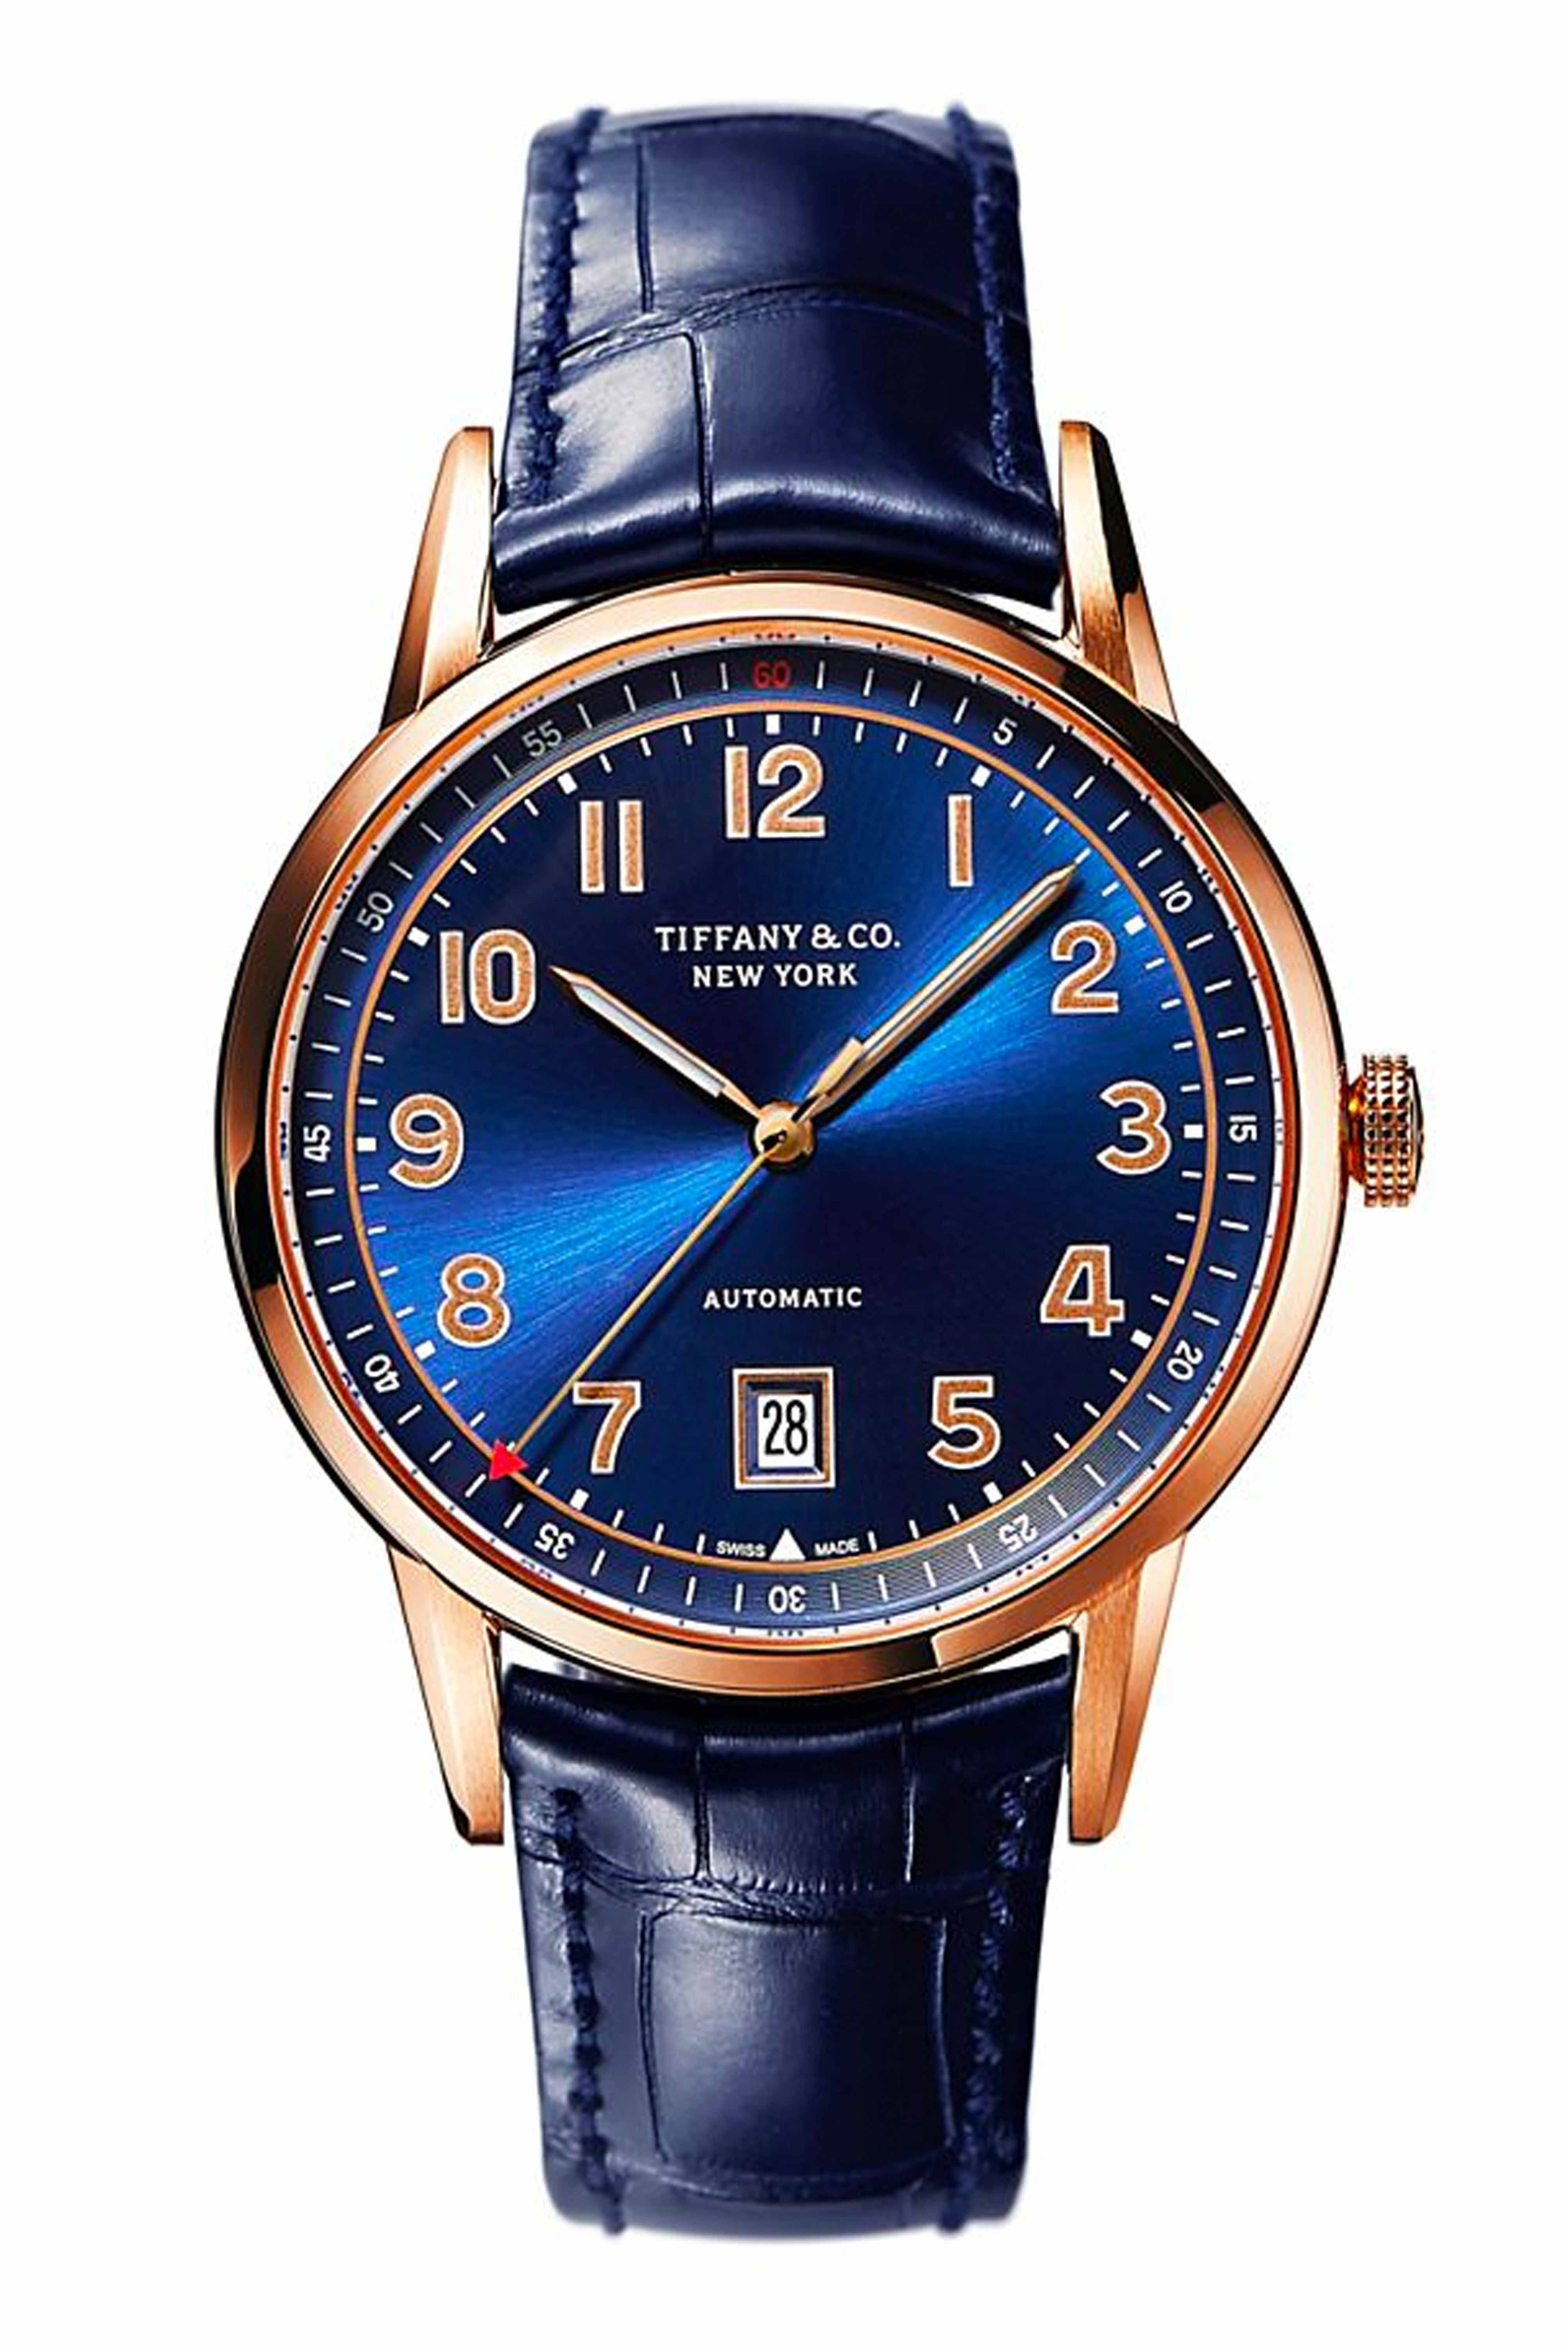 f4333d7bb205 26 Best Men s Luxury Watches of 2018 - Nice Expensive Watches for Men